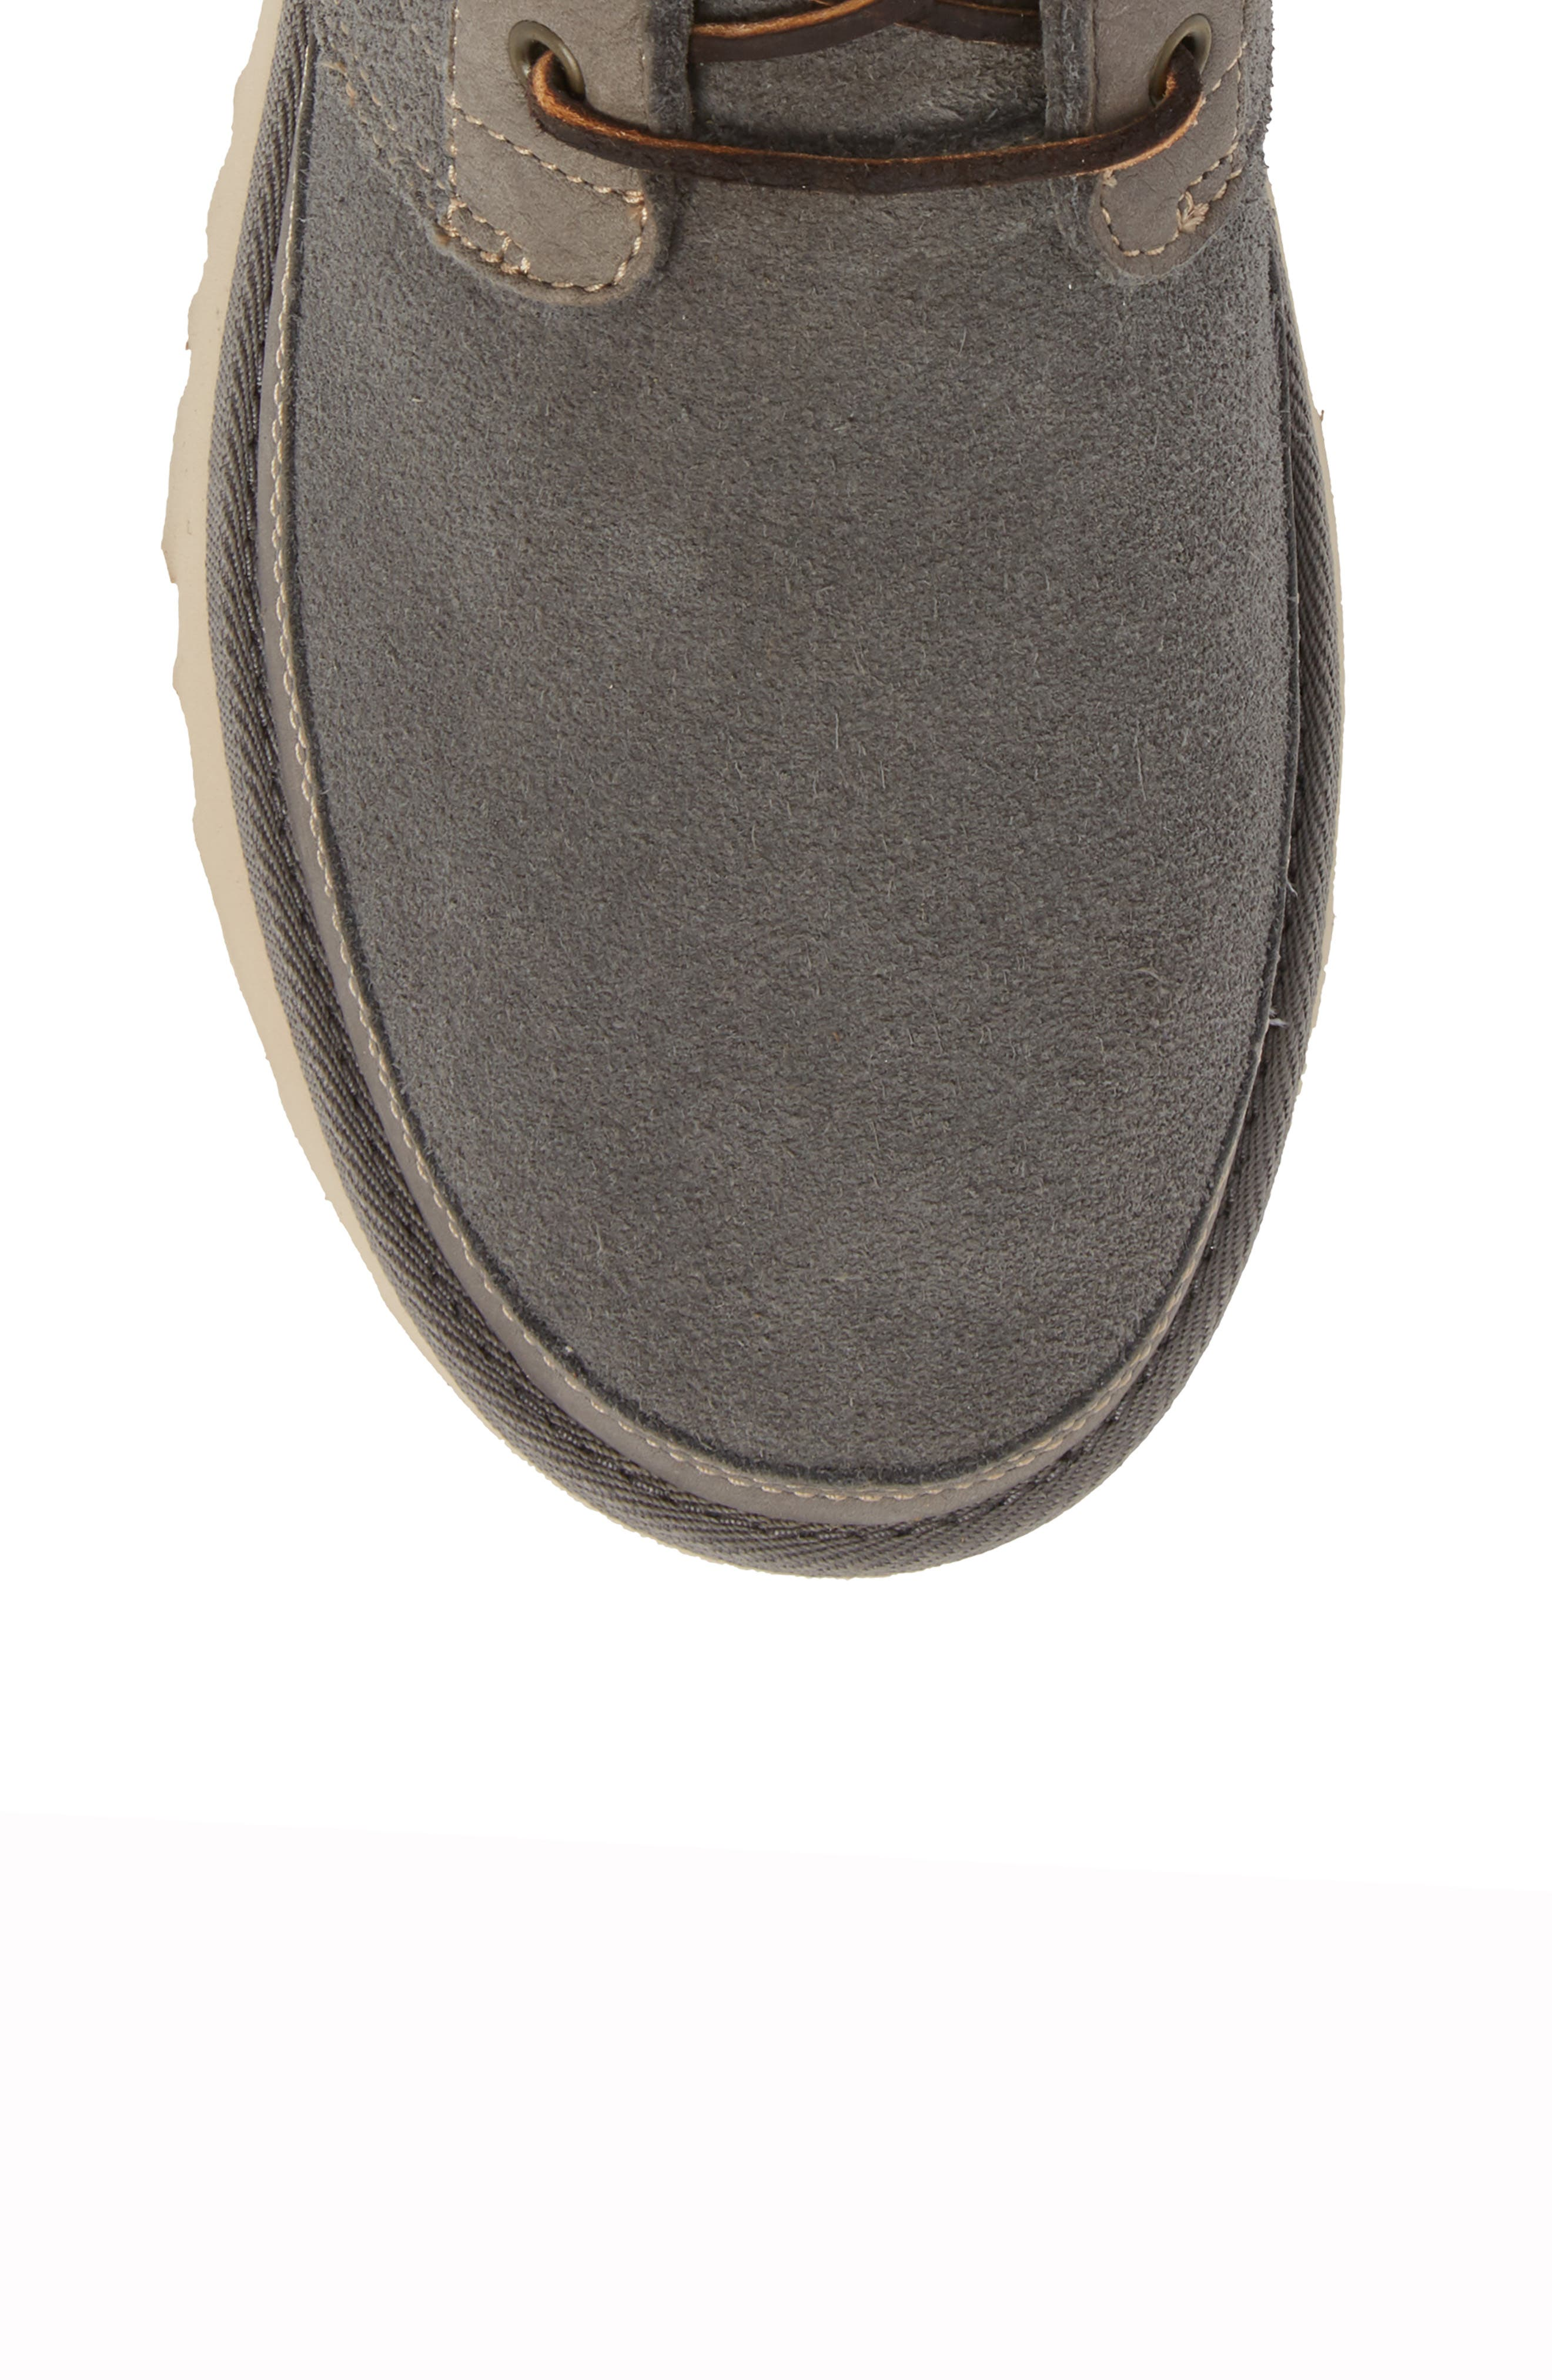 Neumel Unlined Chukka Boot,                             Alternate thumbnail 5, color,                             CHARCOAL LEATHER